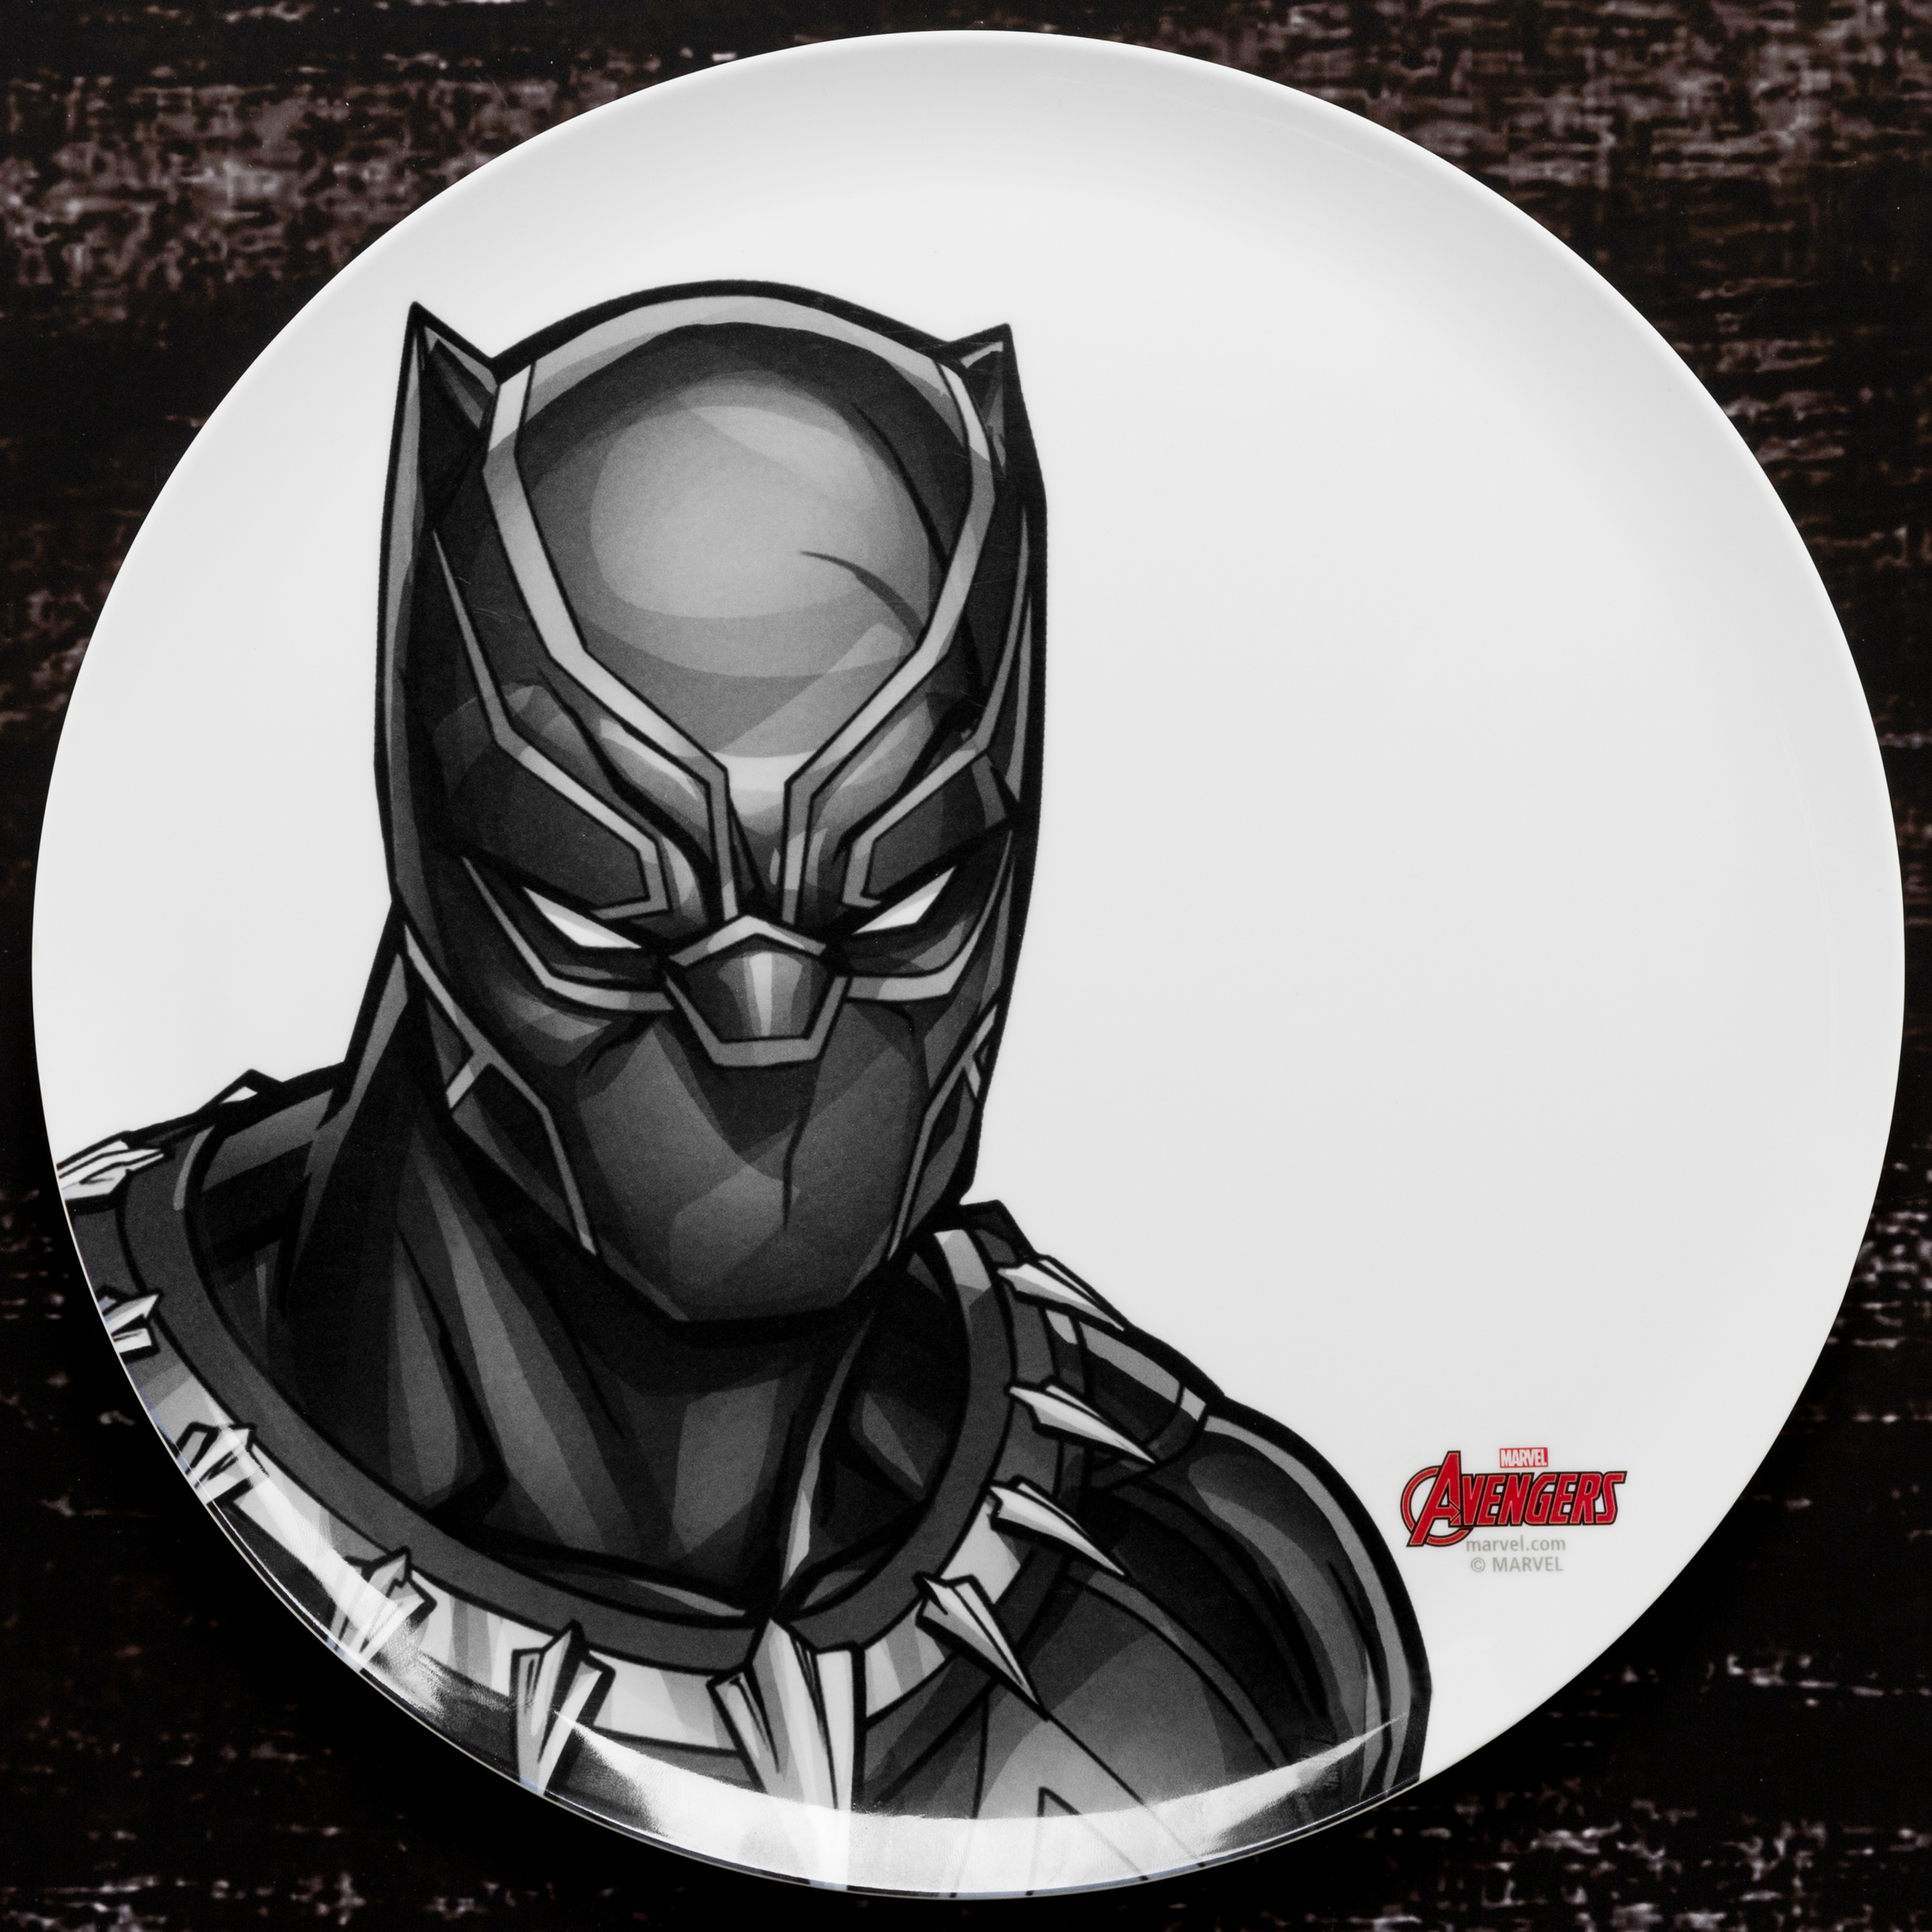 Marvel Comics Dinnerware Set, Black Panther & The Avengers, 2-piece set slideshow image 4